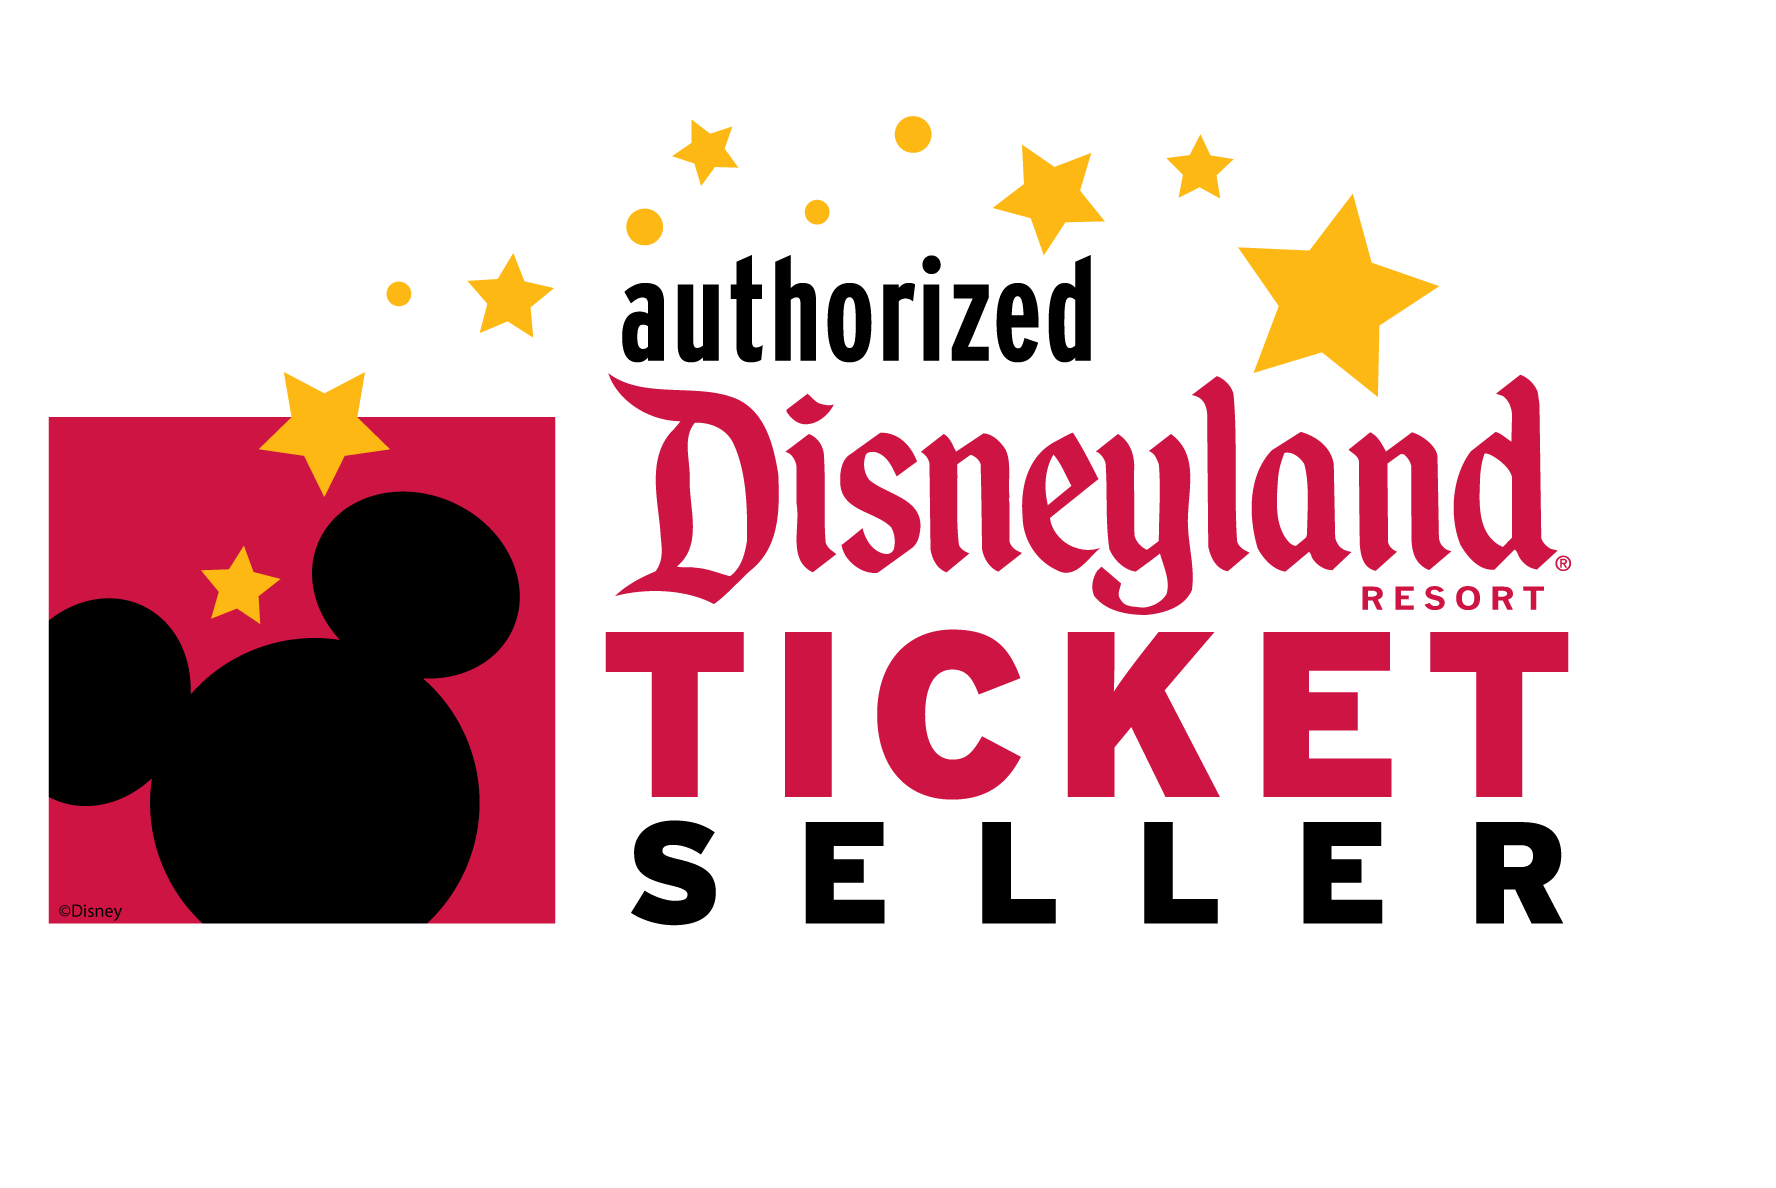 DLR-Authorized Ticket Seller-Logo 1776x1188 (184KB) 2012.png